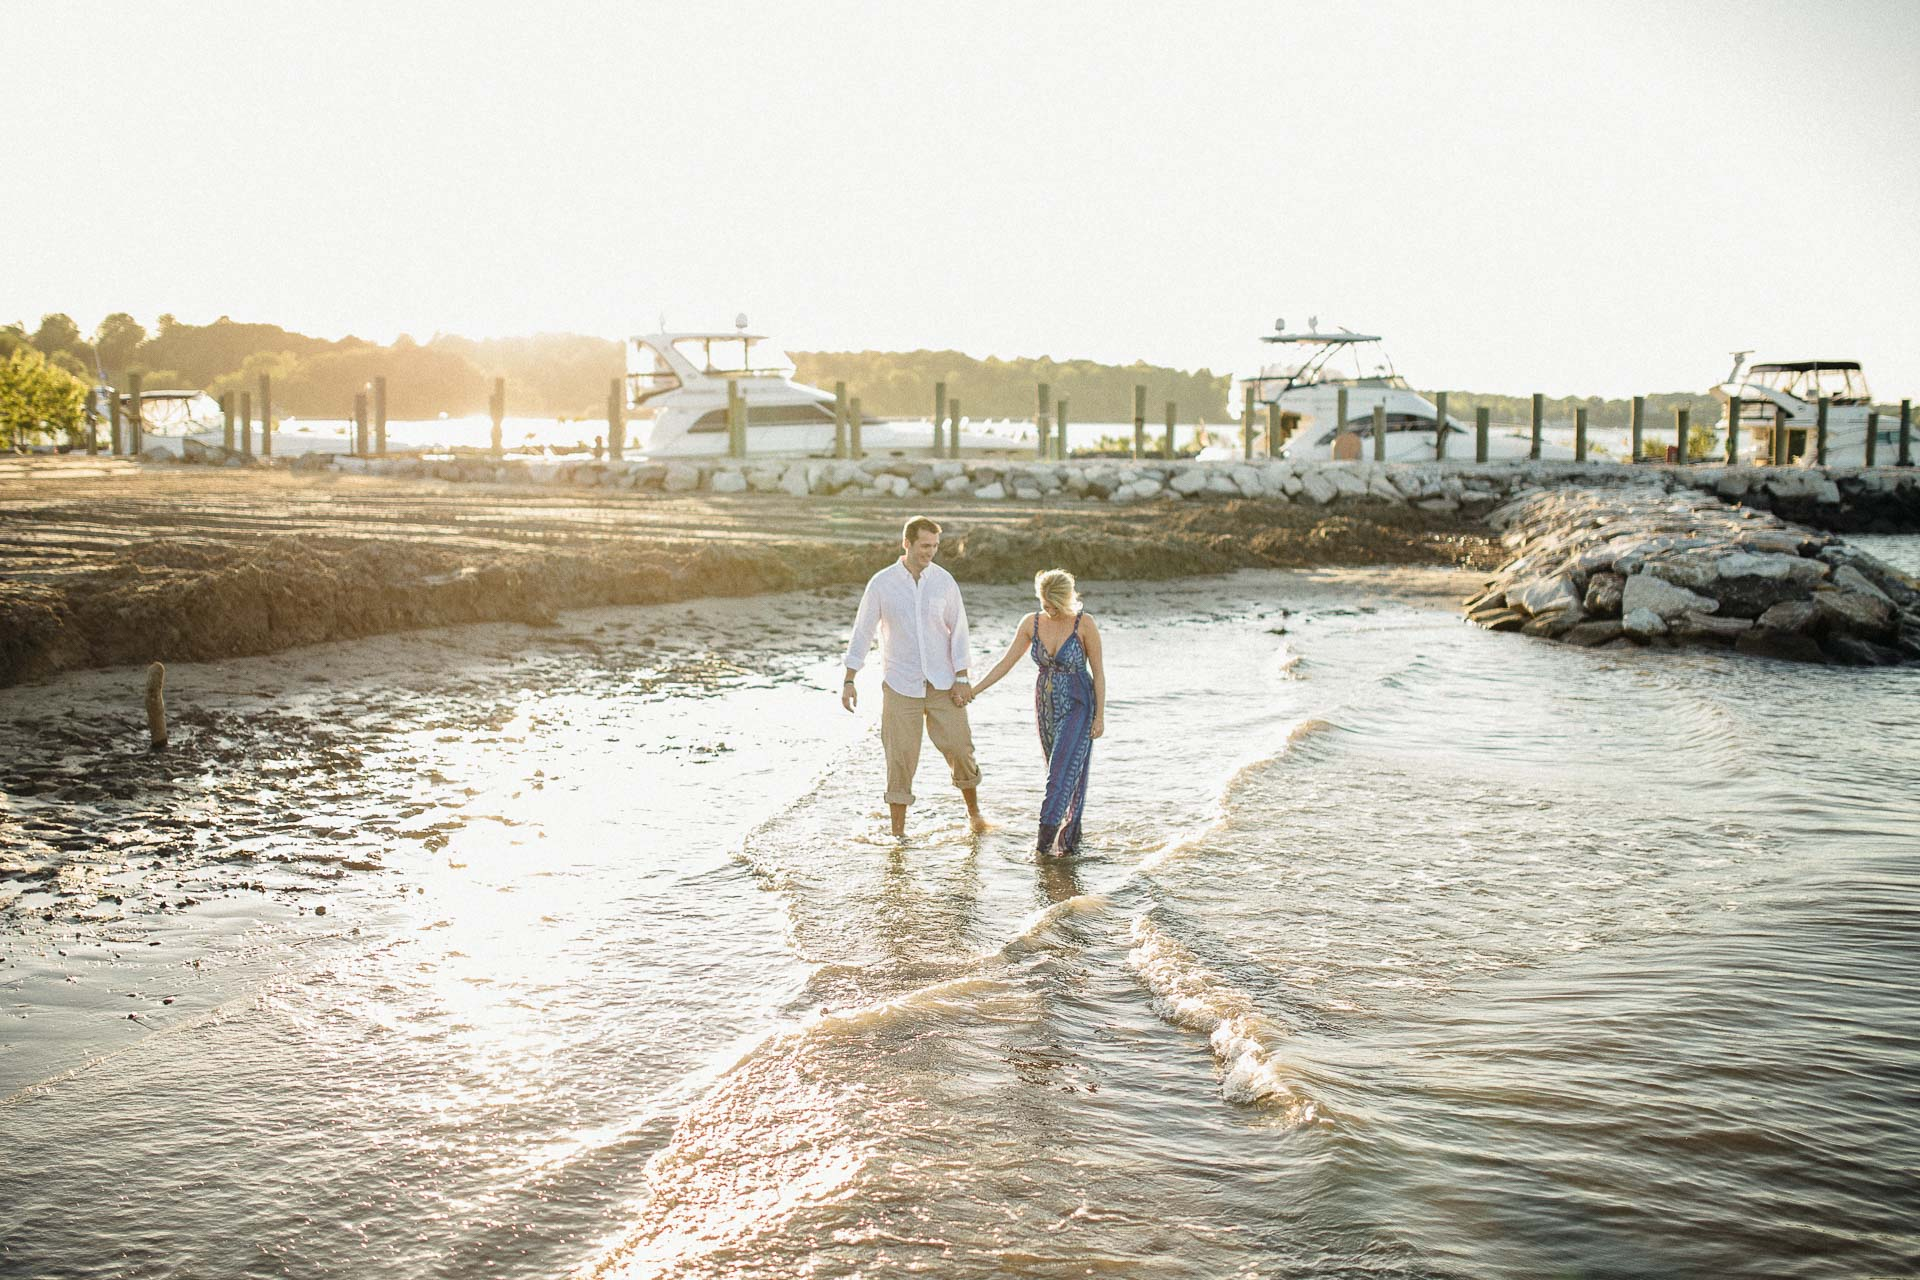 Kristin_Sasa_Engagement_Herrington_Maryland_JeanLaurentGaudy_050